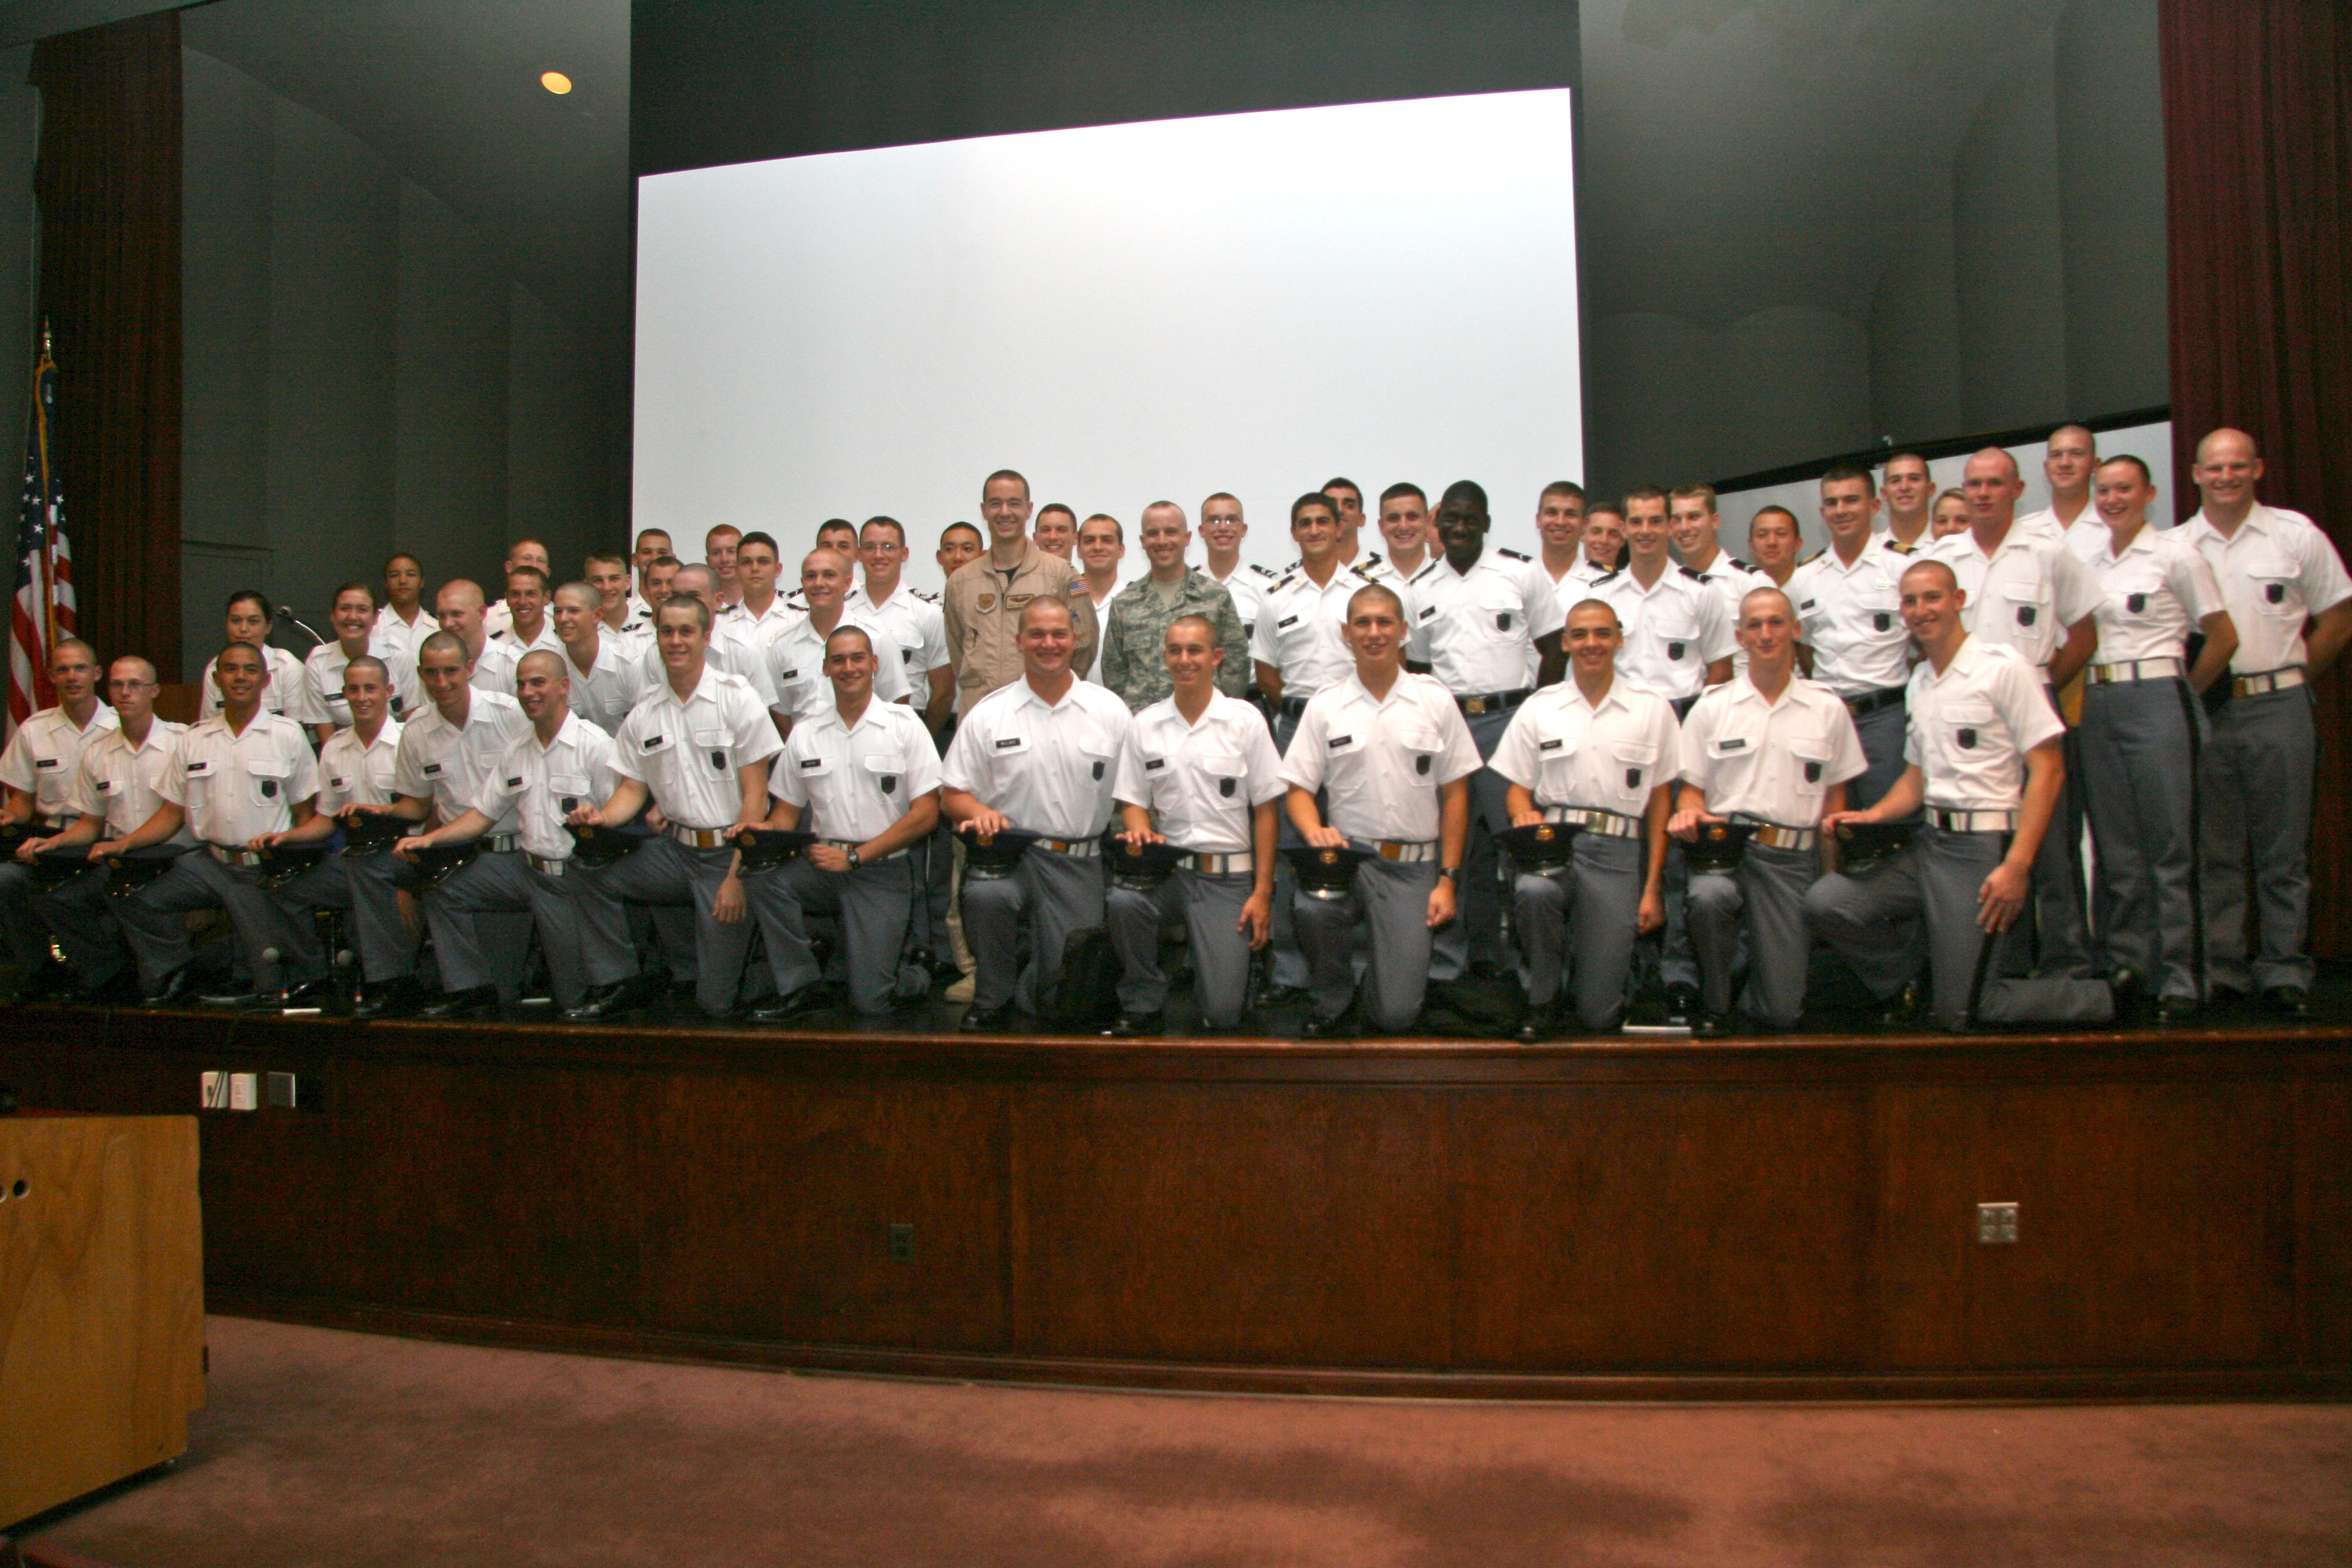 Capt. Dan Richardson (center, left), U.S. Air Force and Capt. Chris Callaway (center, right), U.S. Air Force, previous Gunfighter panelists standing on stage with members of their former cadet company. Echo Company